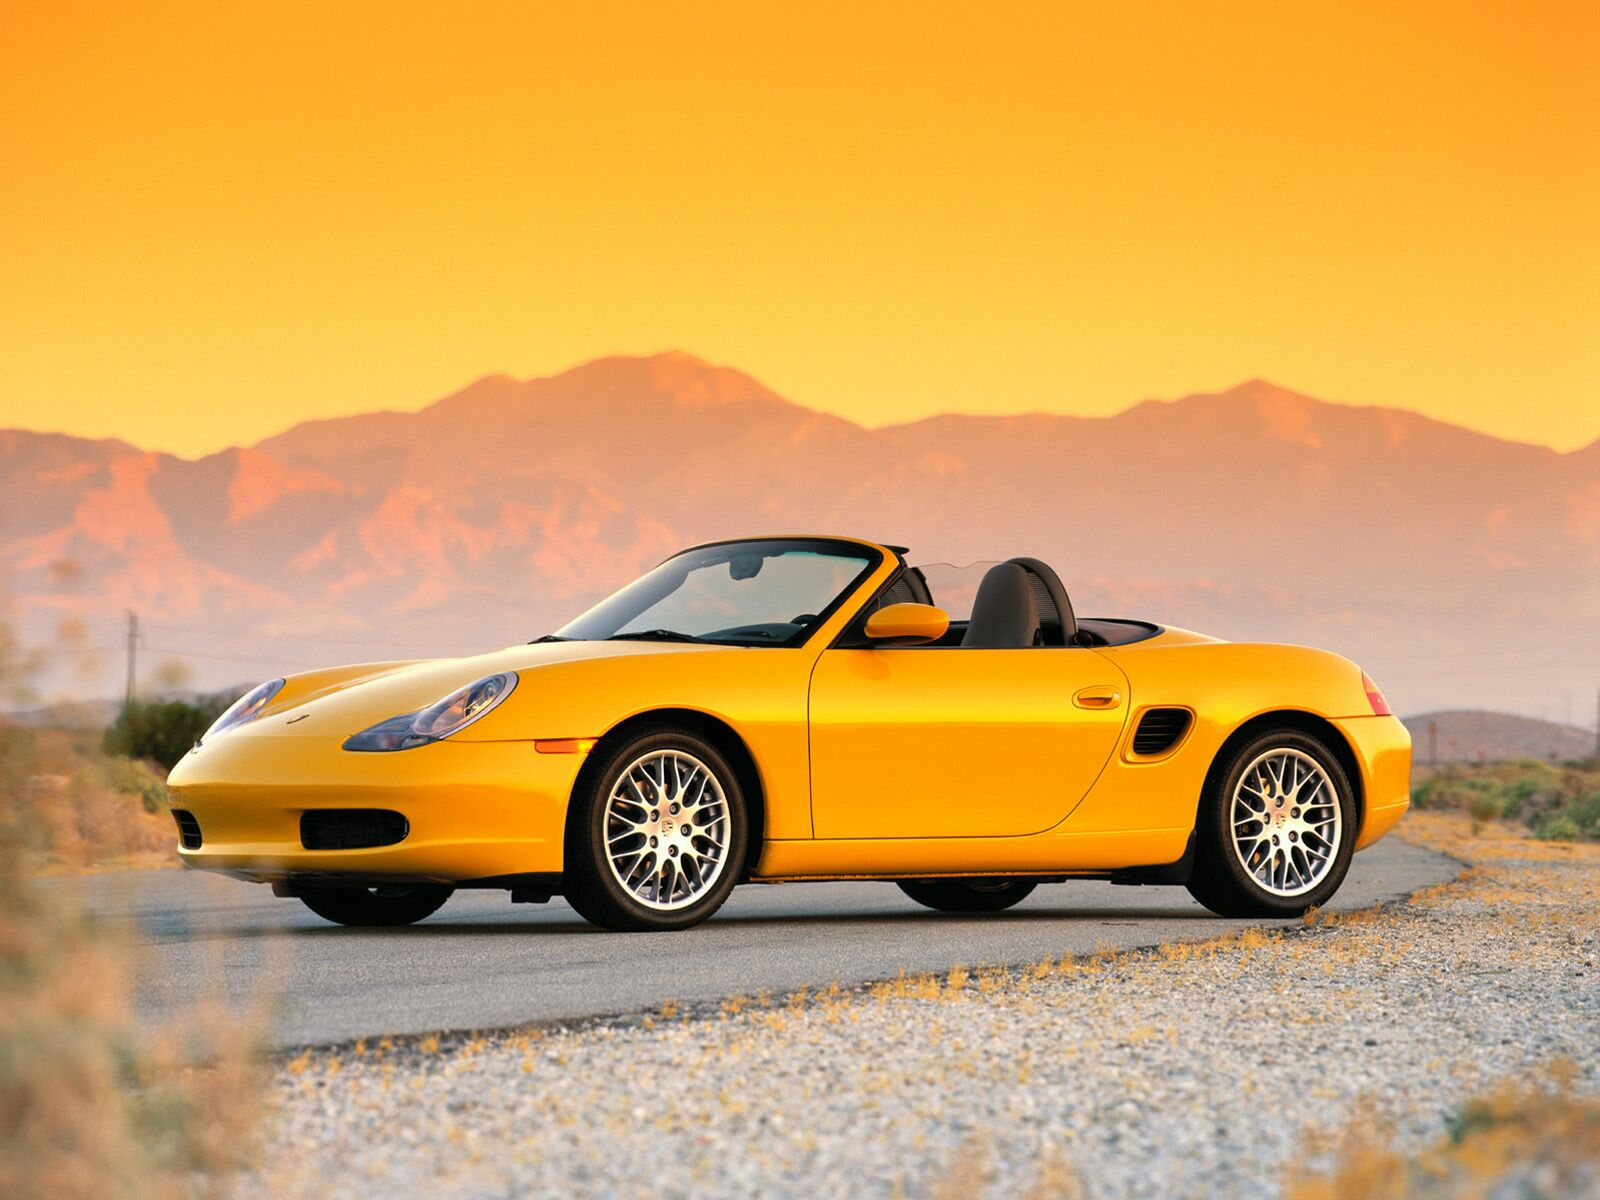 Htc Evo 3d Stock Wallpapers Yellow Boxster Wallpapers Yellow Boxster Stock Photos